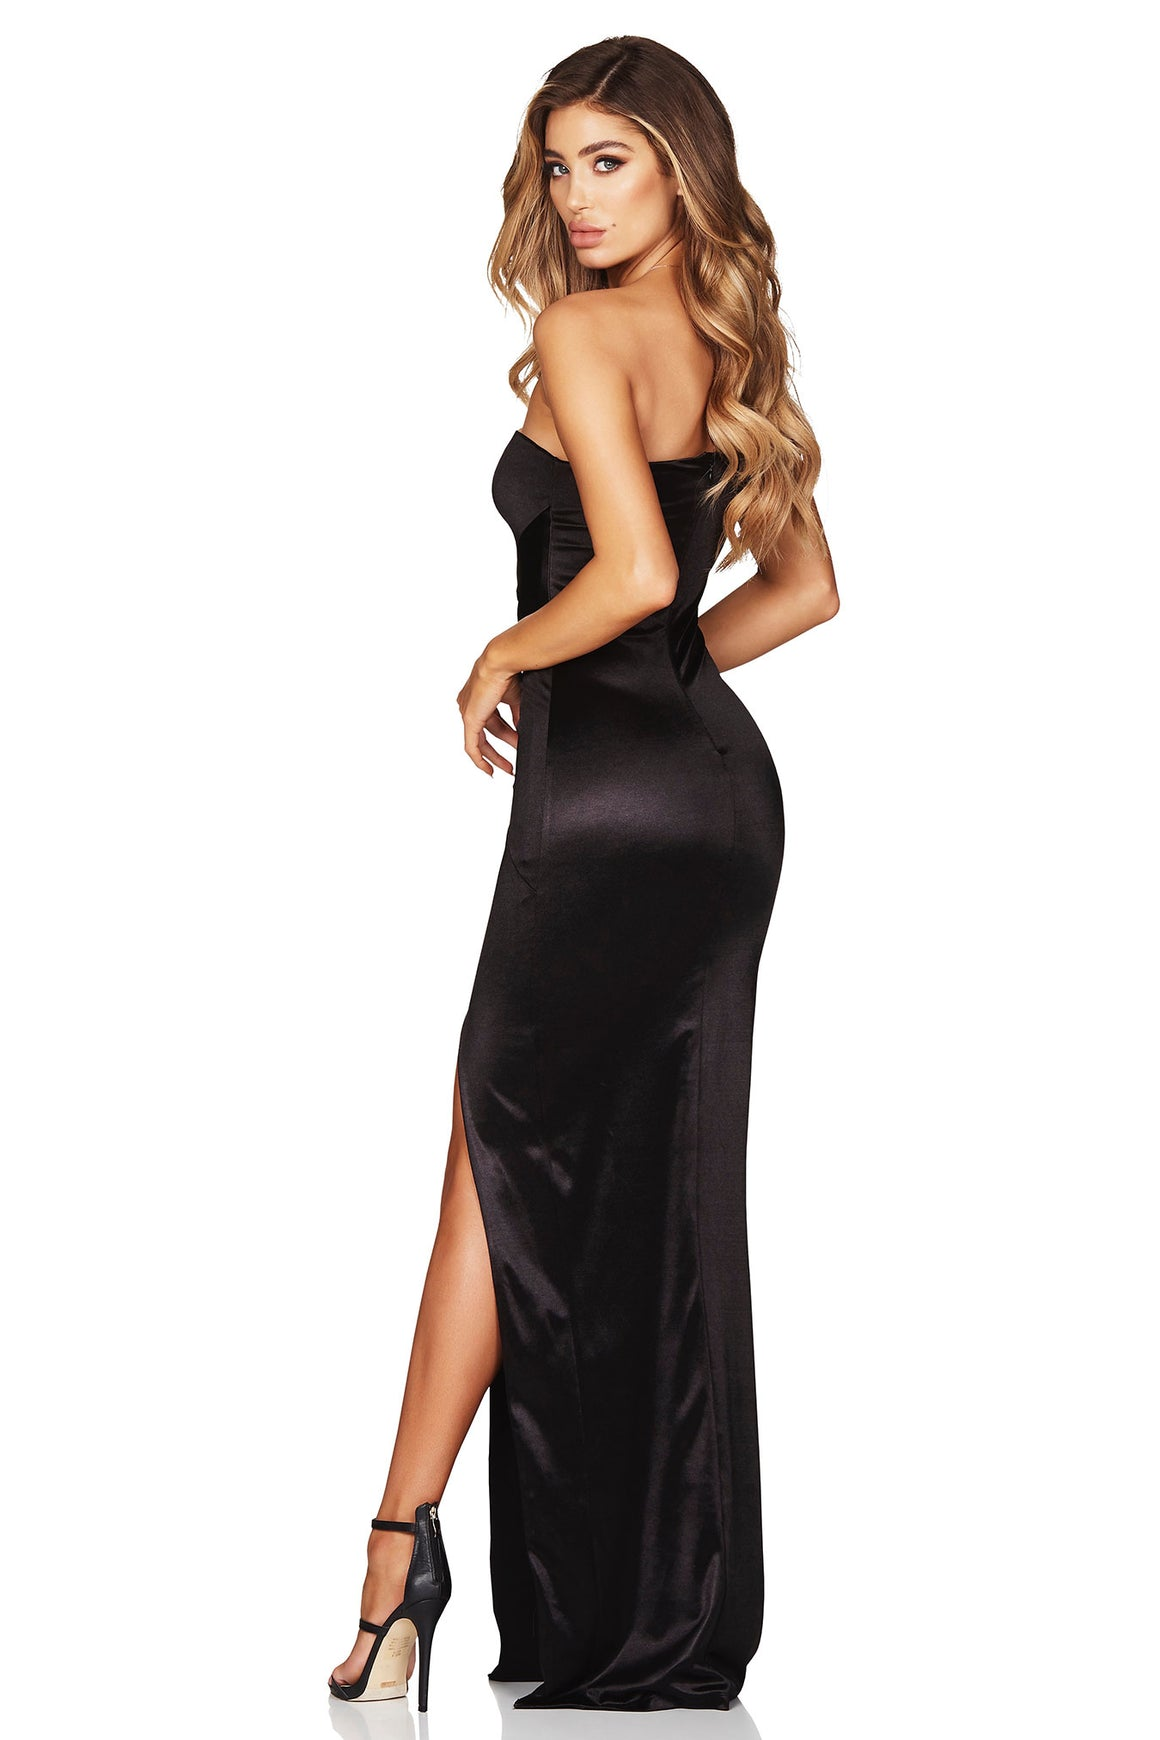 Tease Satin Gown - Black